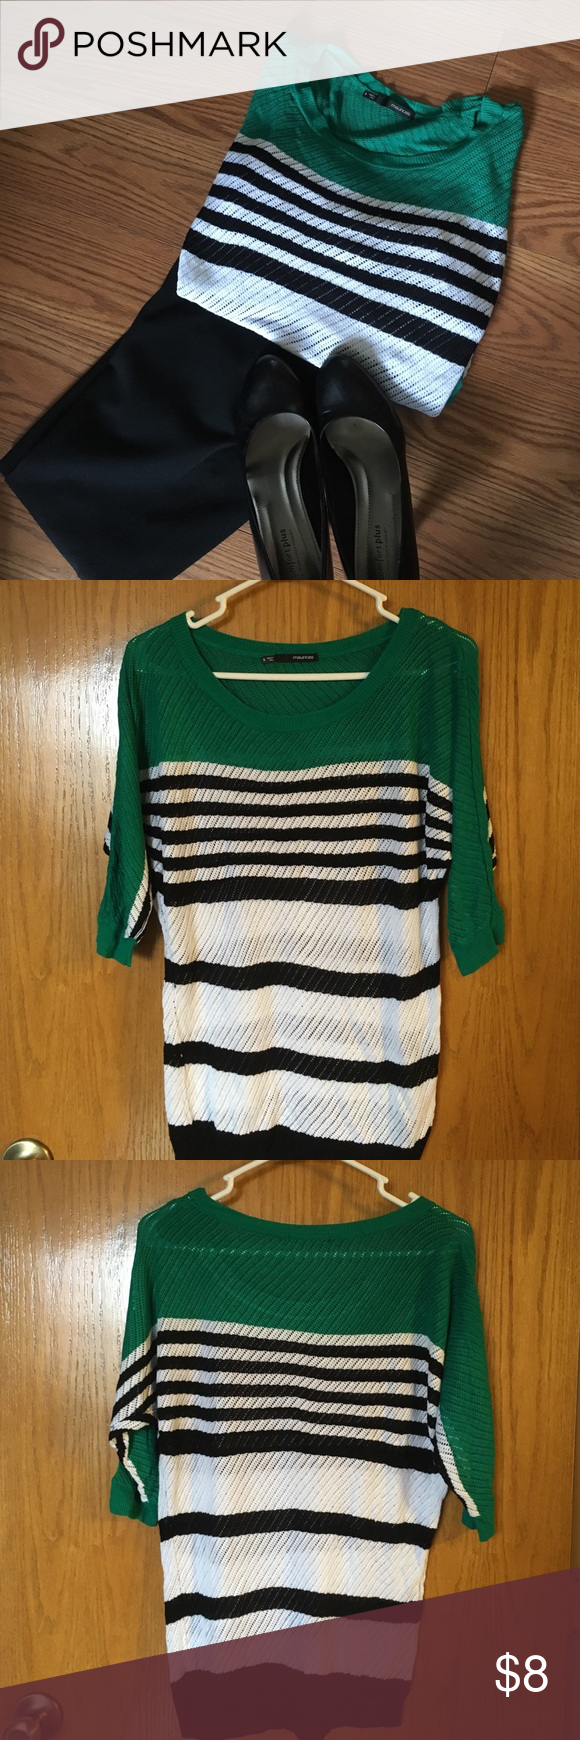 Maurice's turquoise, black, & white stripe sweater Maurice's size small turquoise, black, and white striped sweater. Lightweight, drape fit. Pants and heels not for sale. Maurices Sweaters Crew & Scoop Necks